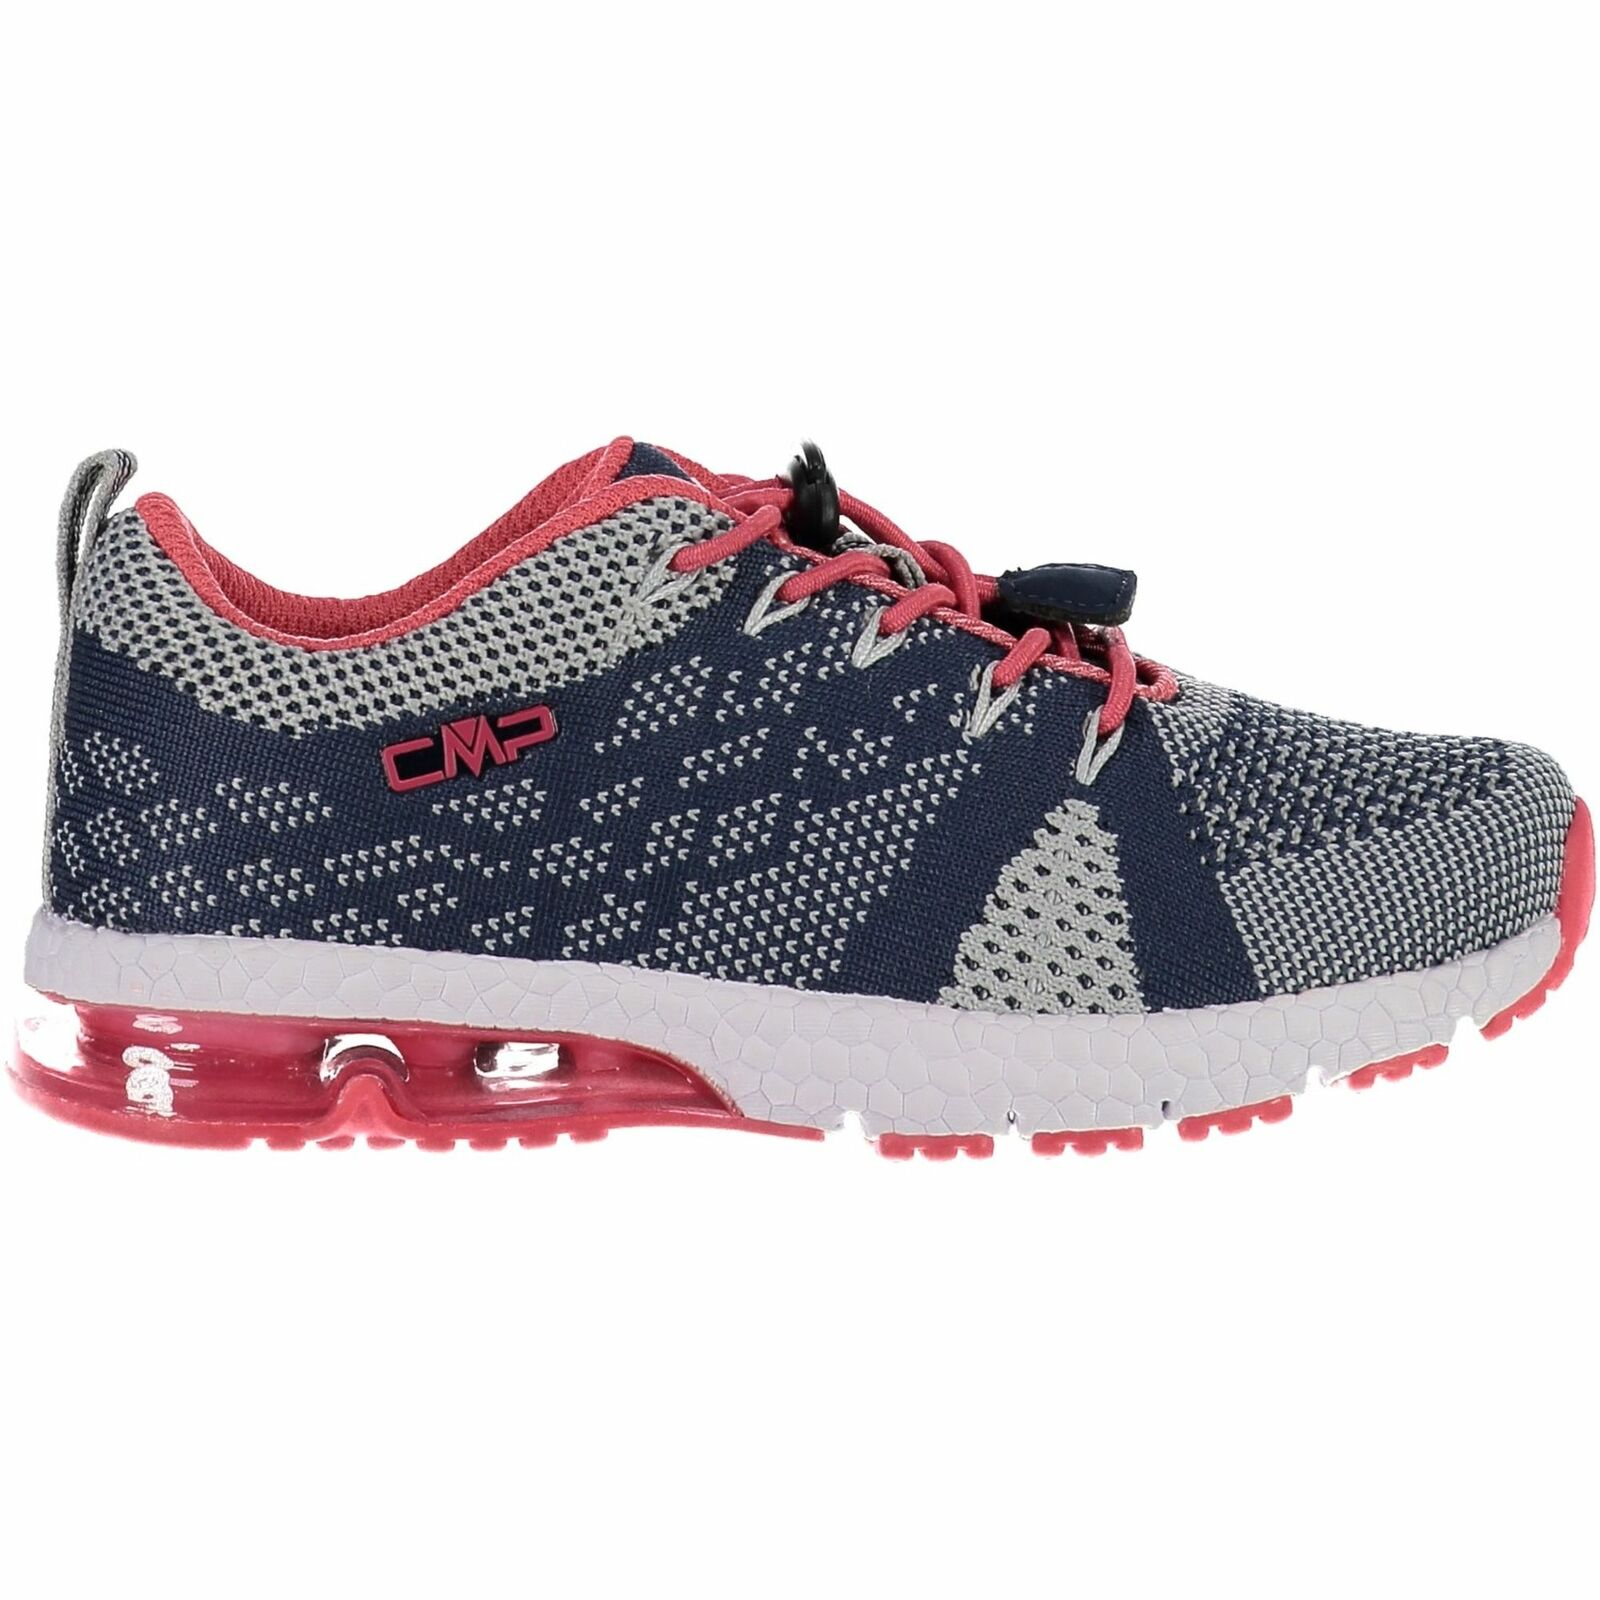 CMP sport kids knit fitness shoe dark bluee  lightweight breathable  for sale online